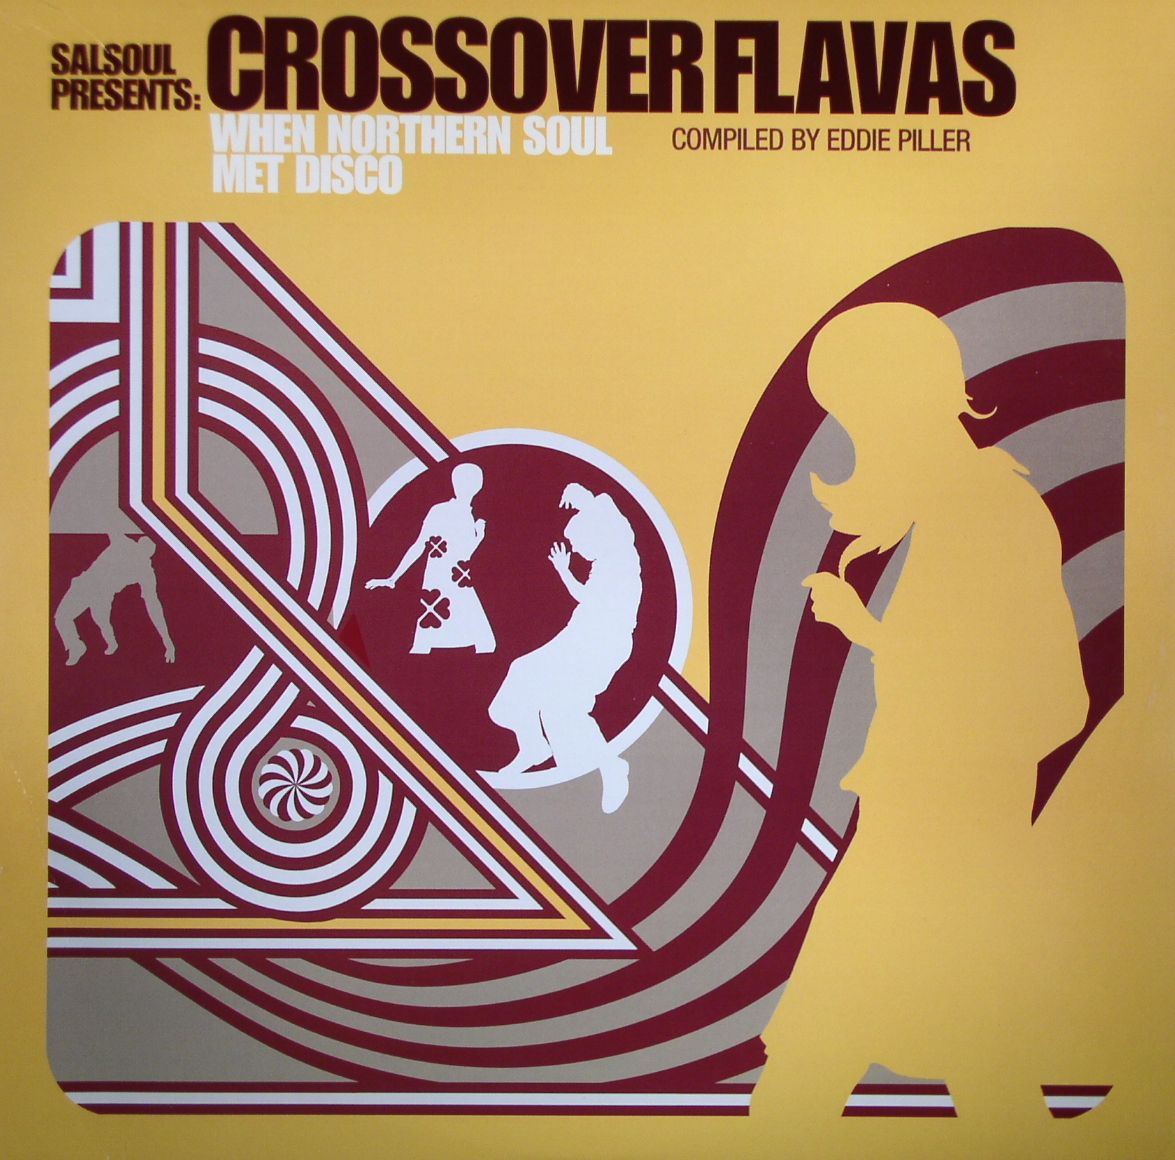 VARIOUS - Salsoul Presents Crossover Flavas: When Northern Soul Met Disco